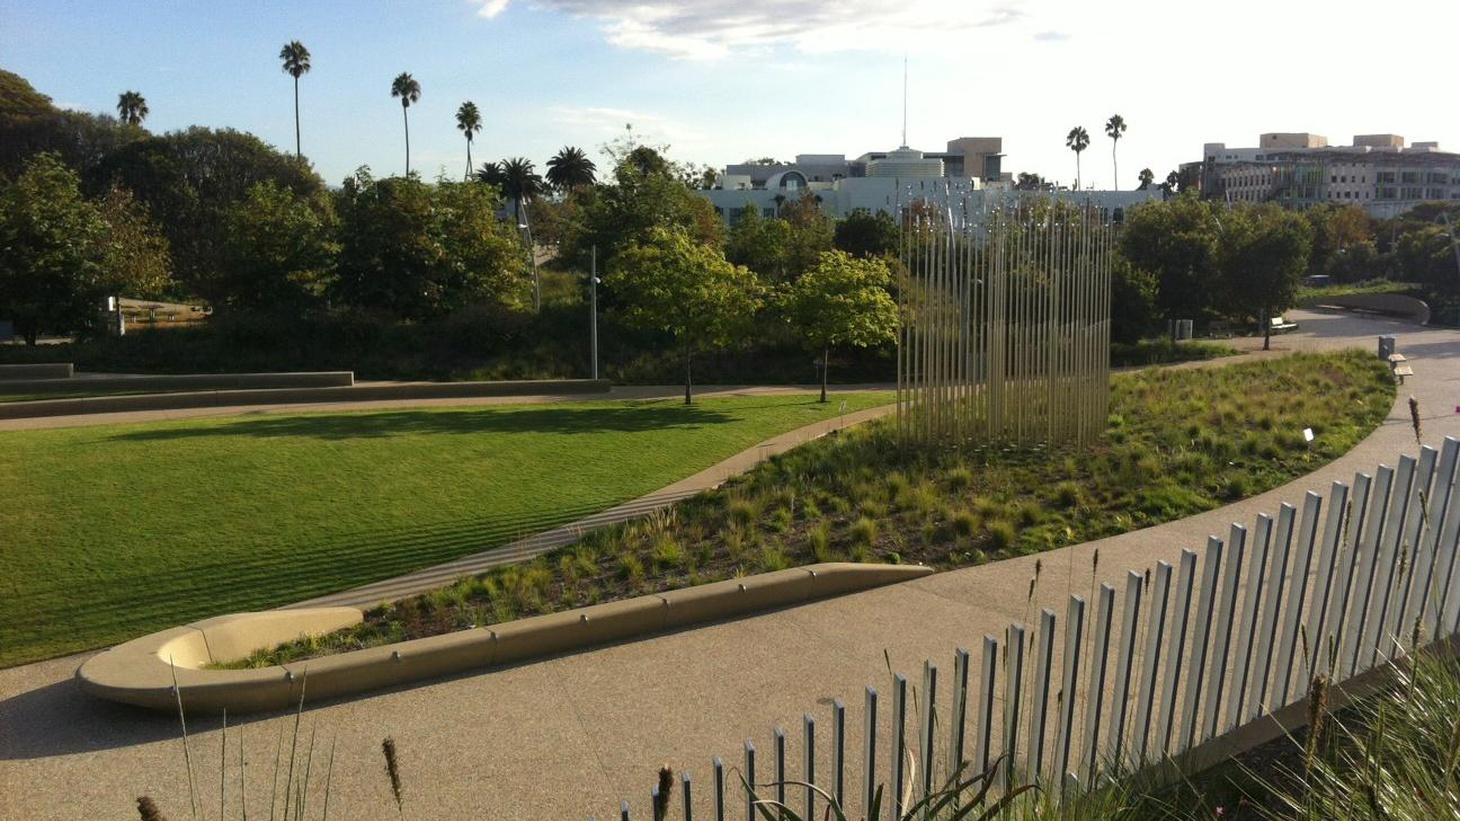 """Santa Monica is notoriously cautious about so-called """"smart growth,"""" but a new park and upscale condo complex are finally bringing energy to the Civic Center."""